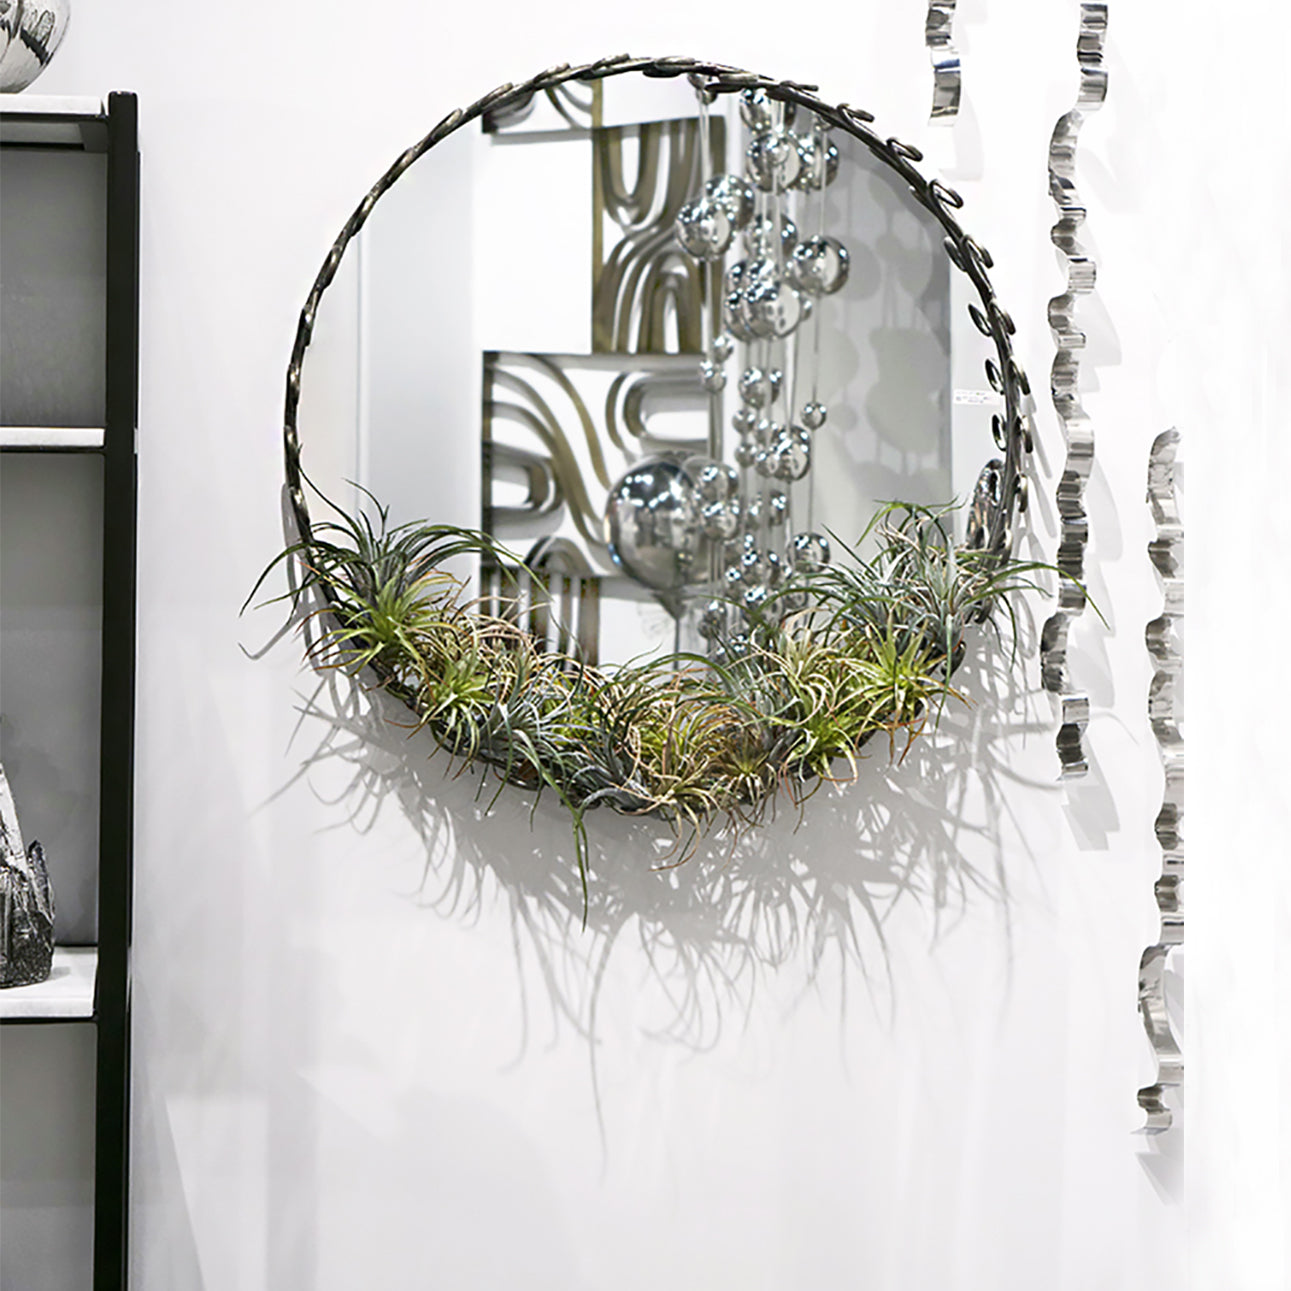 Kerl Mirror with Air Plants